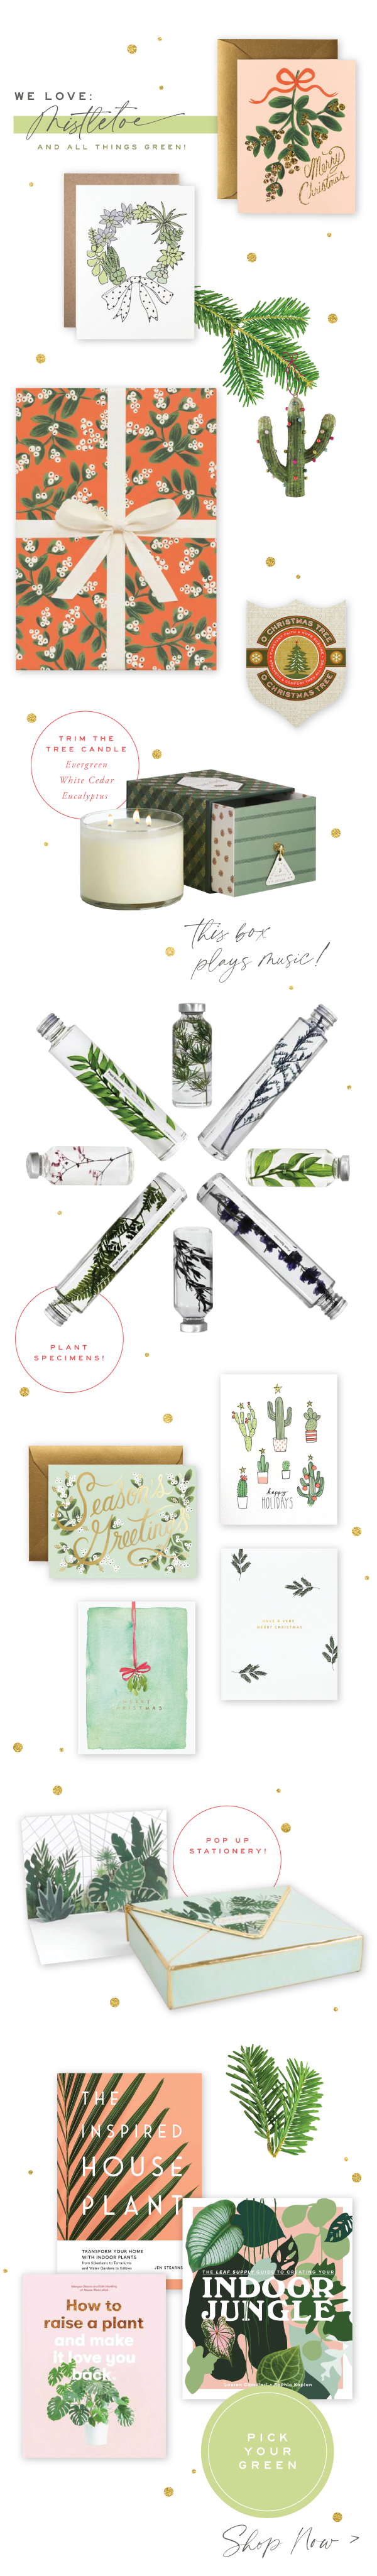 Urbanic Paper Boutique Venice Design Christmas Holiday Mistletoe Green Cards Gifts Wrap